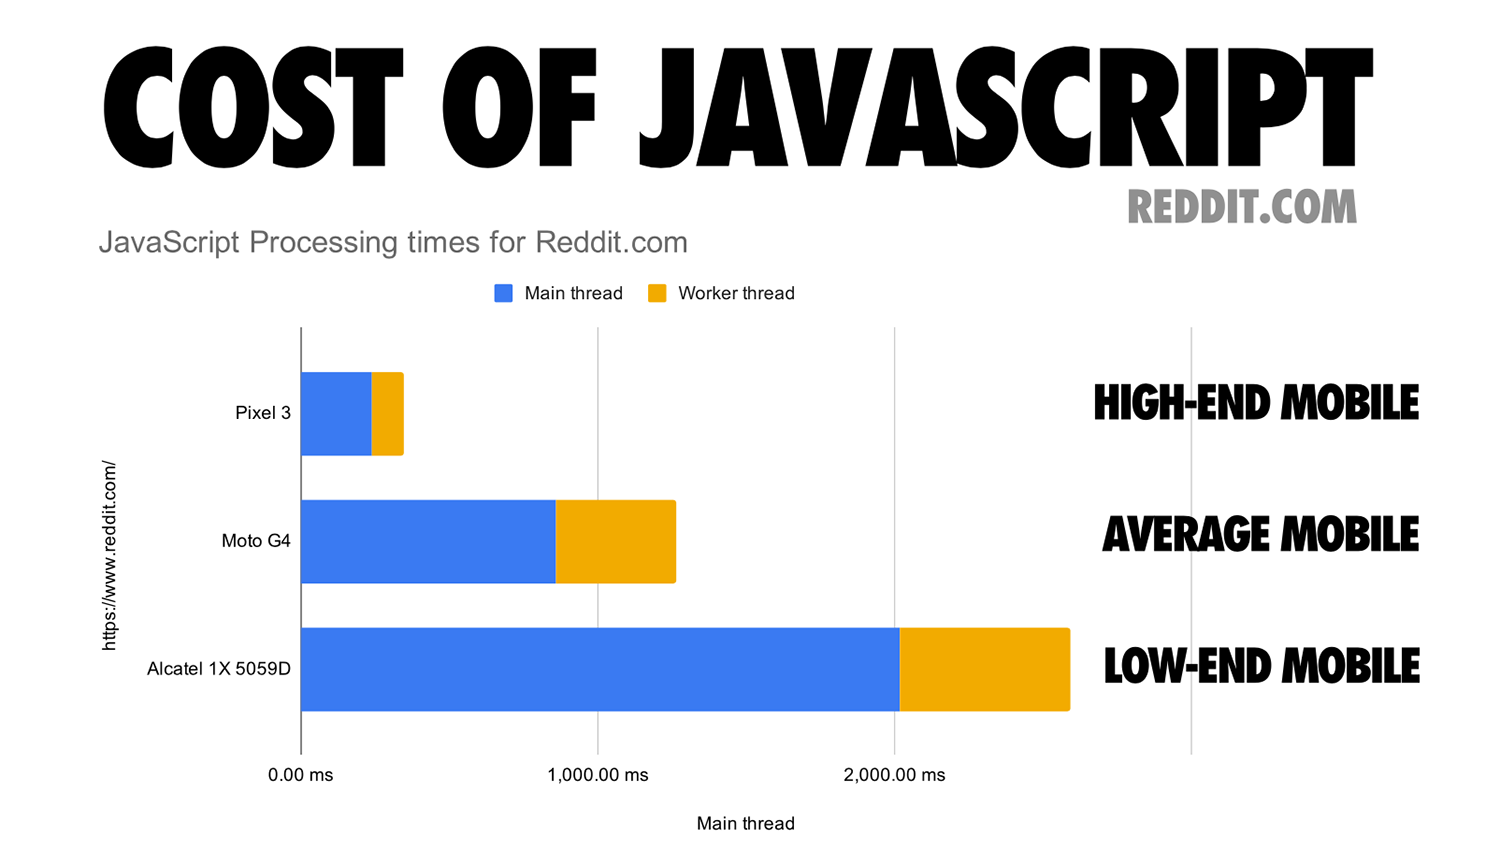 Cost of JavaScript in 2019